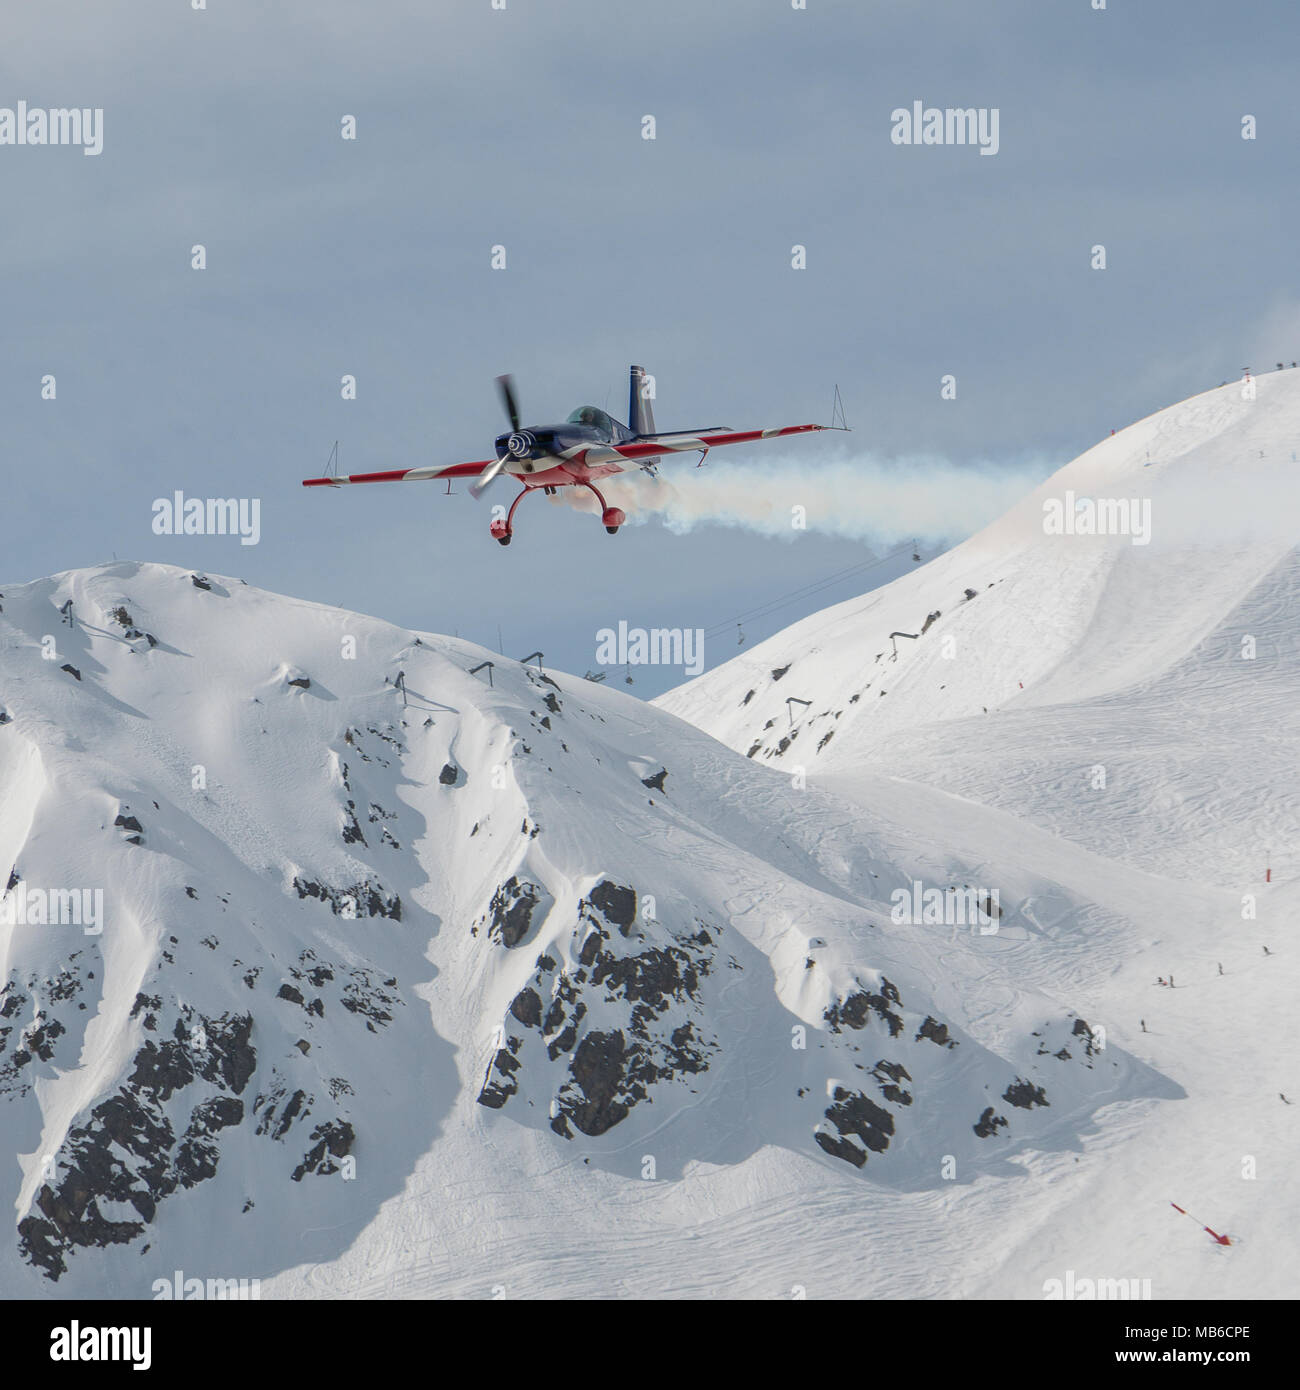 Flying over snowy mountains air shoe fly Courchevel 2018 l'Armee de l'air airplane acrobatic flight over the snow mountains of the 3 Valleys ski area - Stock Image